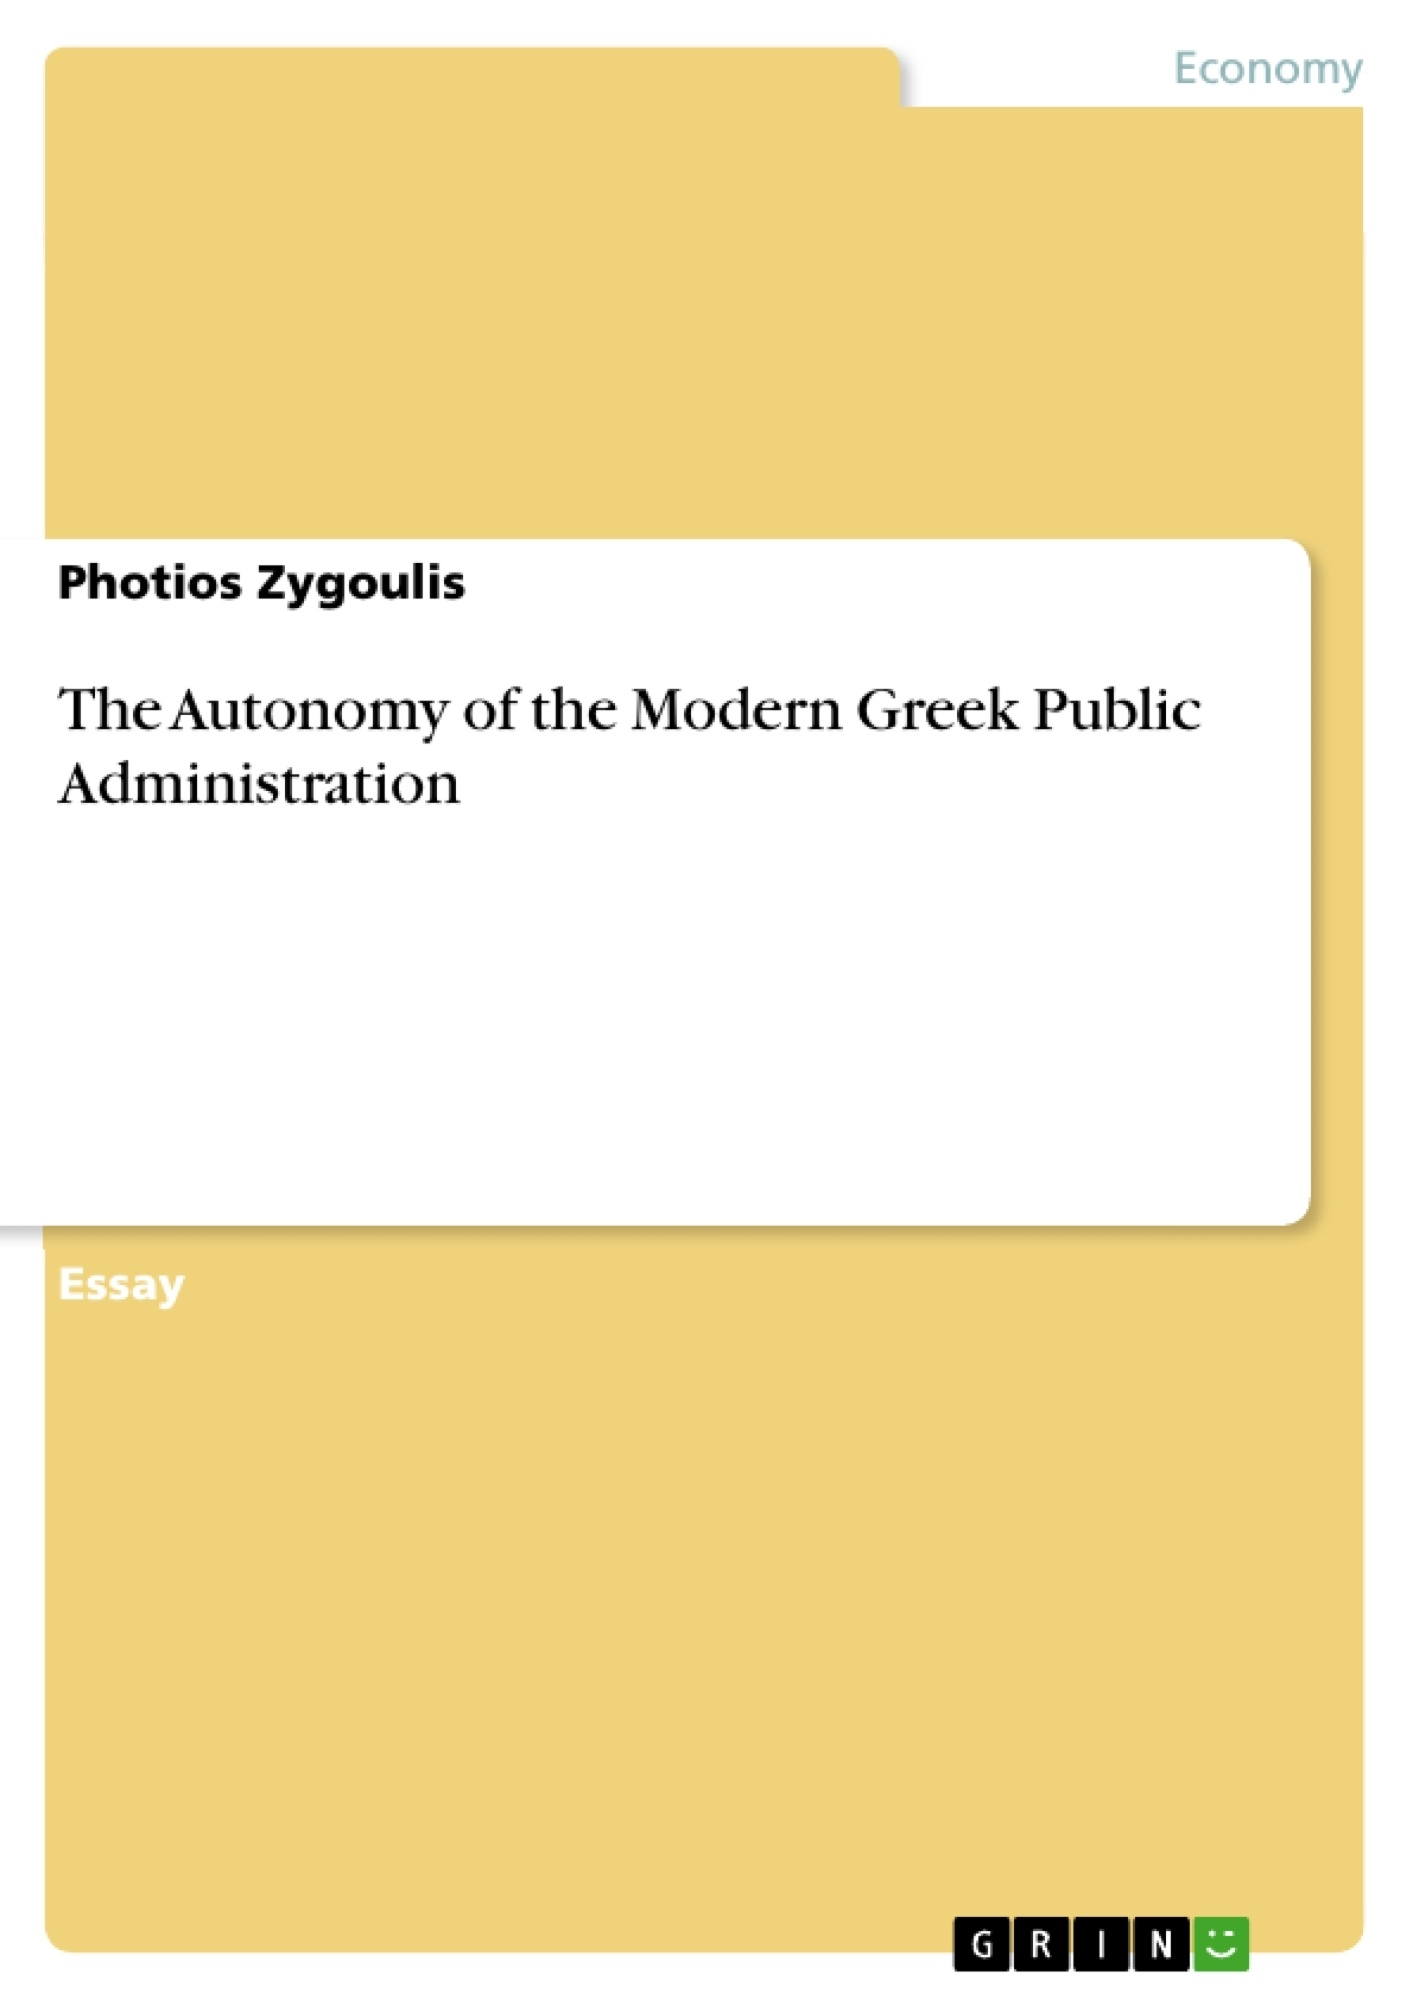 Title: The Autonomy of the Modern Greek Public Administration